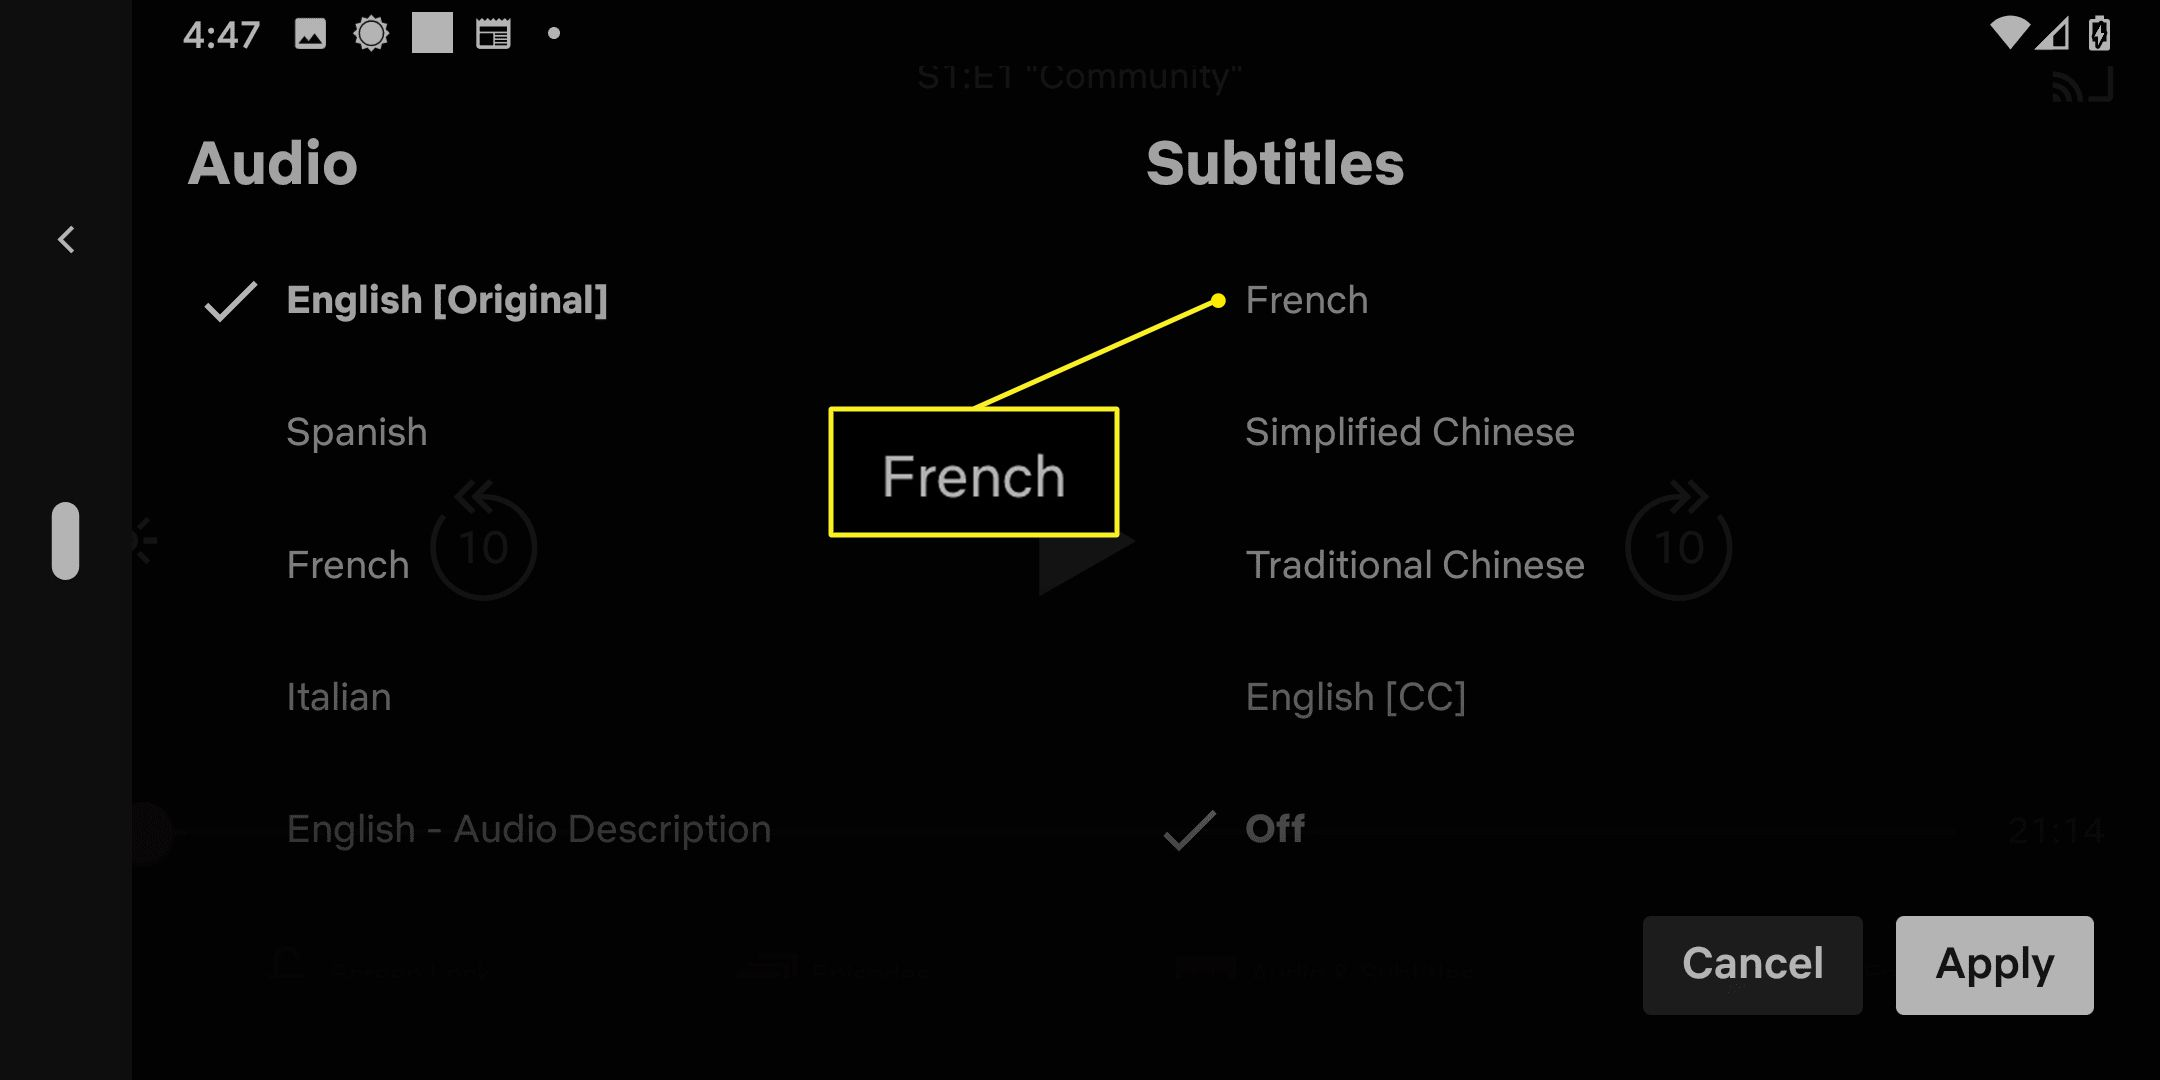 Subtitle options in the Netflix app with French highlighted.